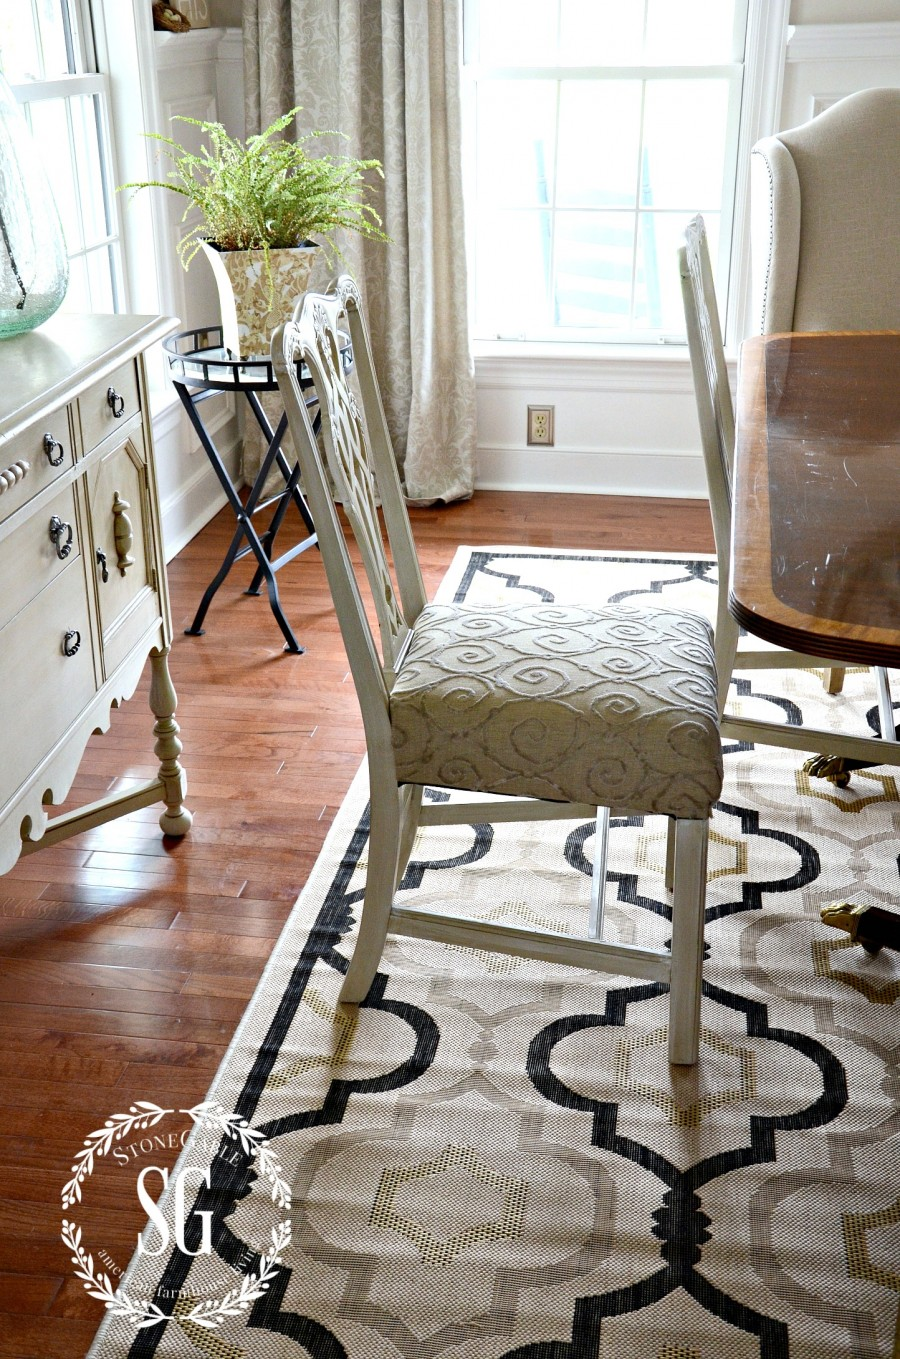 5 rules for choosing the perfect dining room rug stonegable. Black Bedroom Furniture Sets. Home Design Ideas